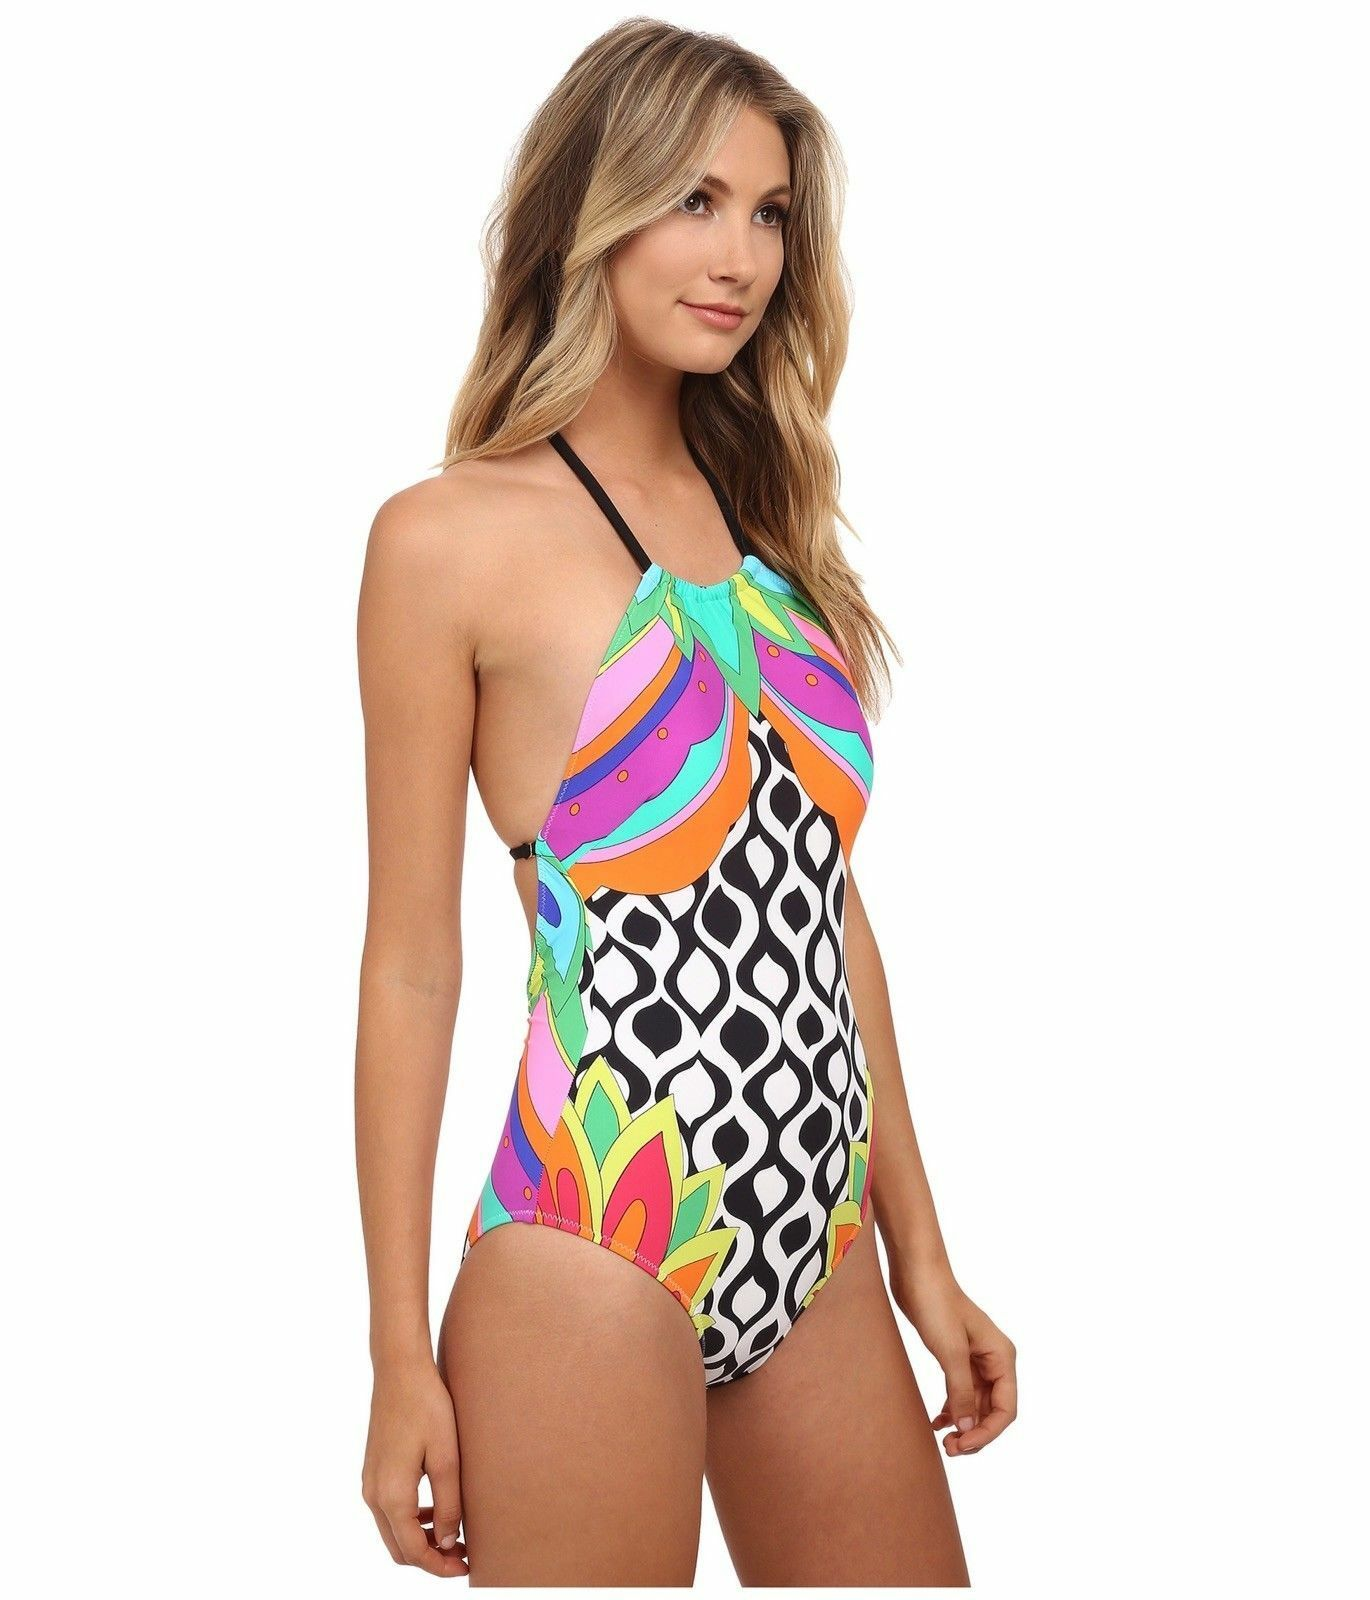 NWT Trina Turk Monokinis and one-piece swimsuits Size 10